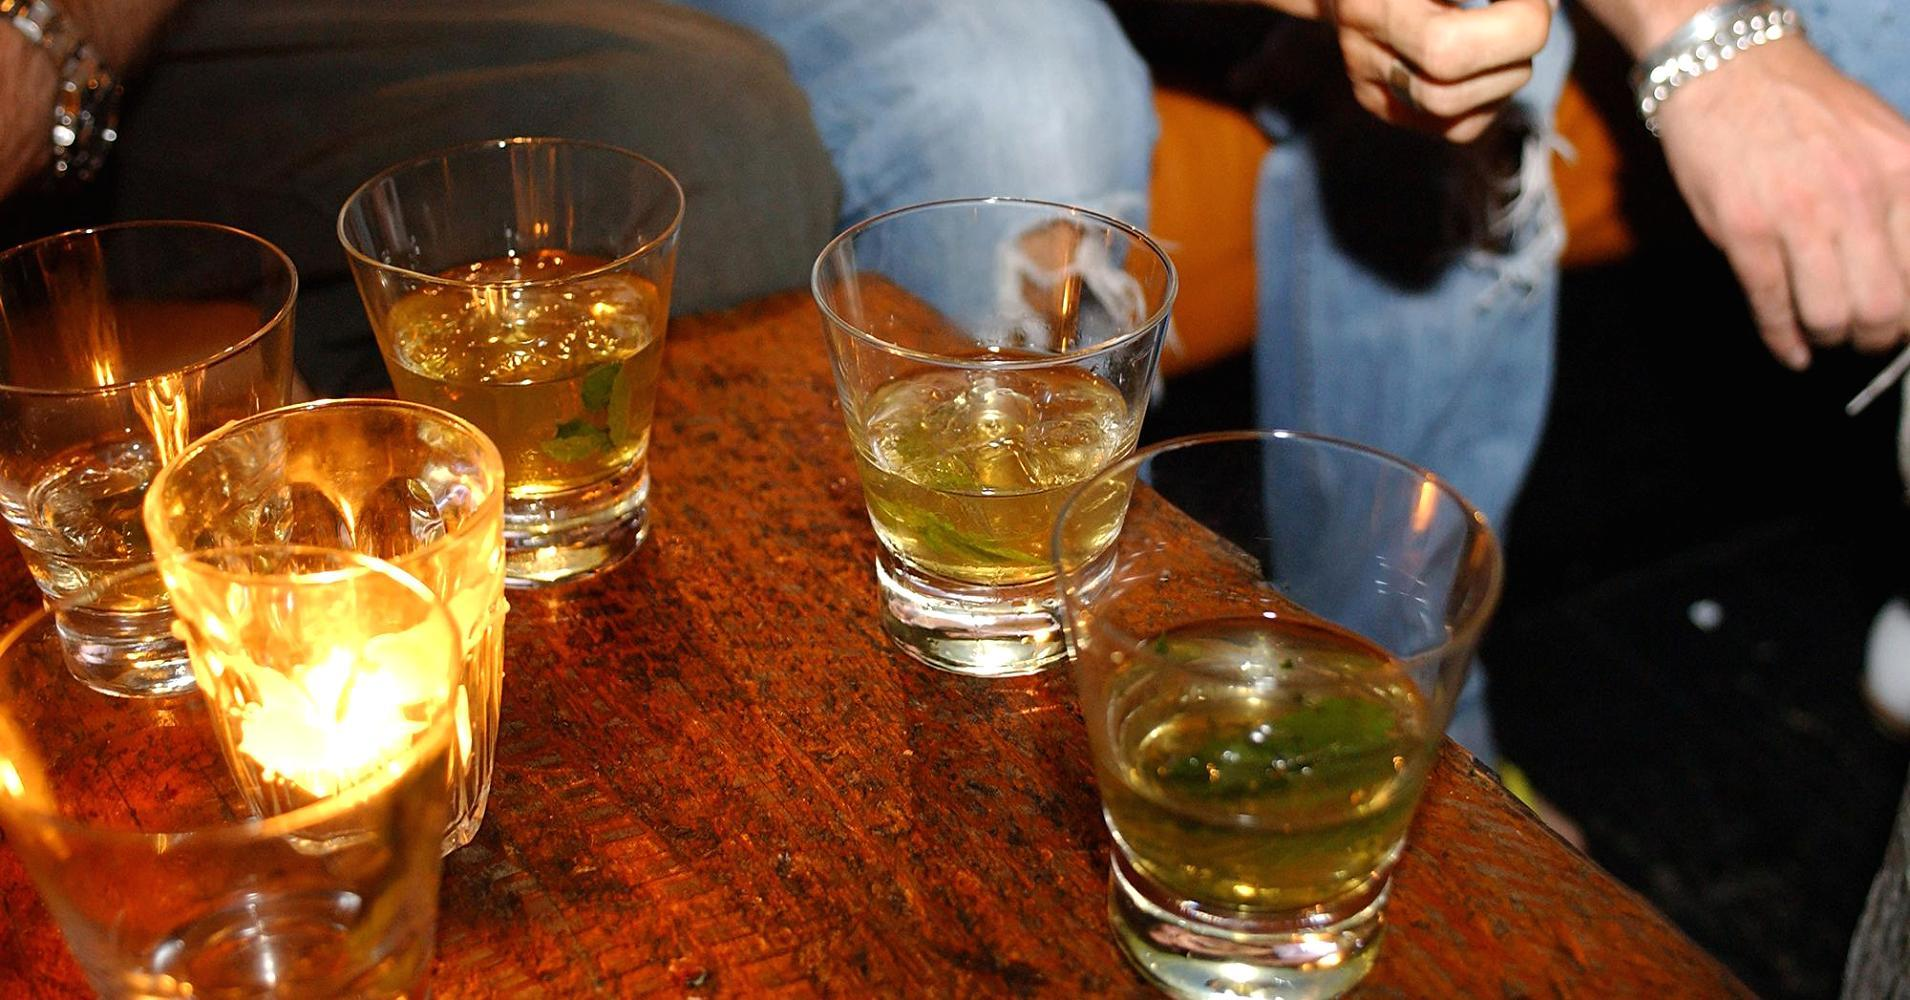 Where America drinks the most: The trouble spots